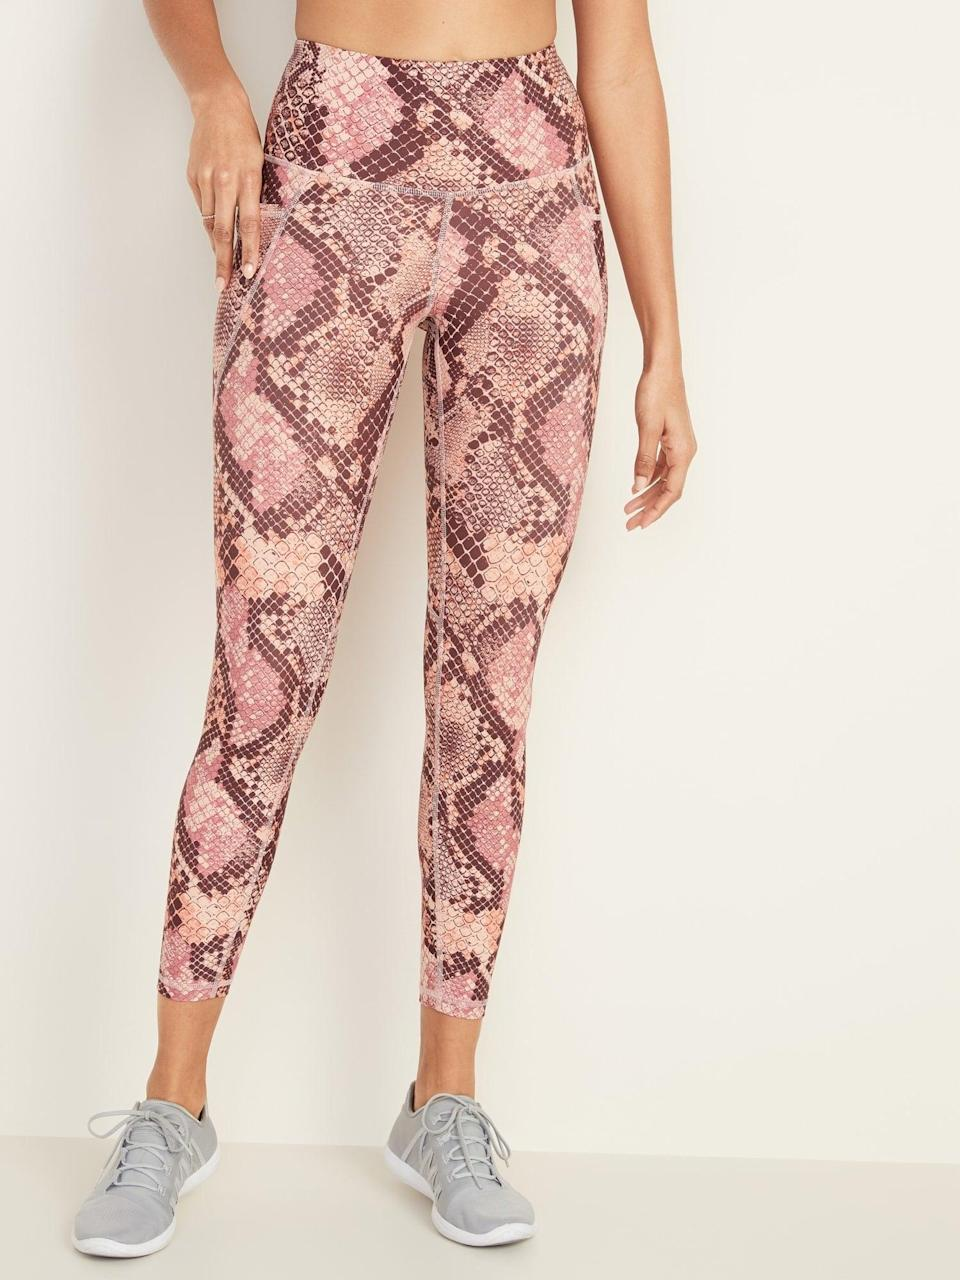 <p>If you're looking for a pattern pair of leggings, opt for these <span>Old Navy High-Waisted Elevate Powersoft 7/8-Length Side-Pocket Leggings</span> ($30, originally $40) in the pink snake-print choice.</p>